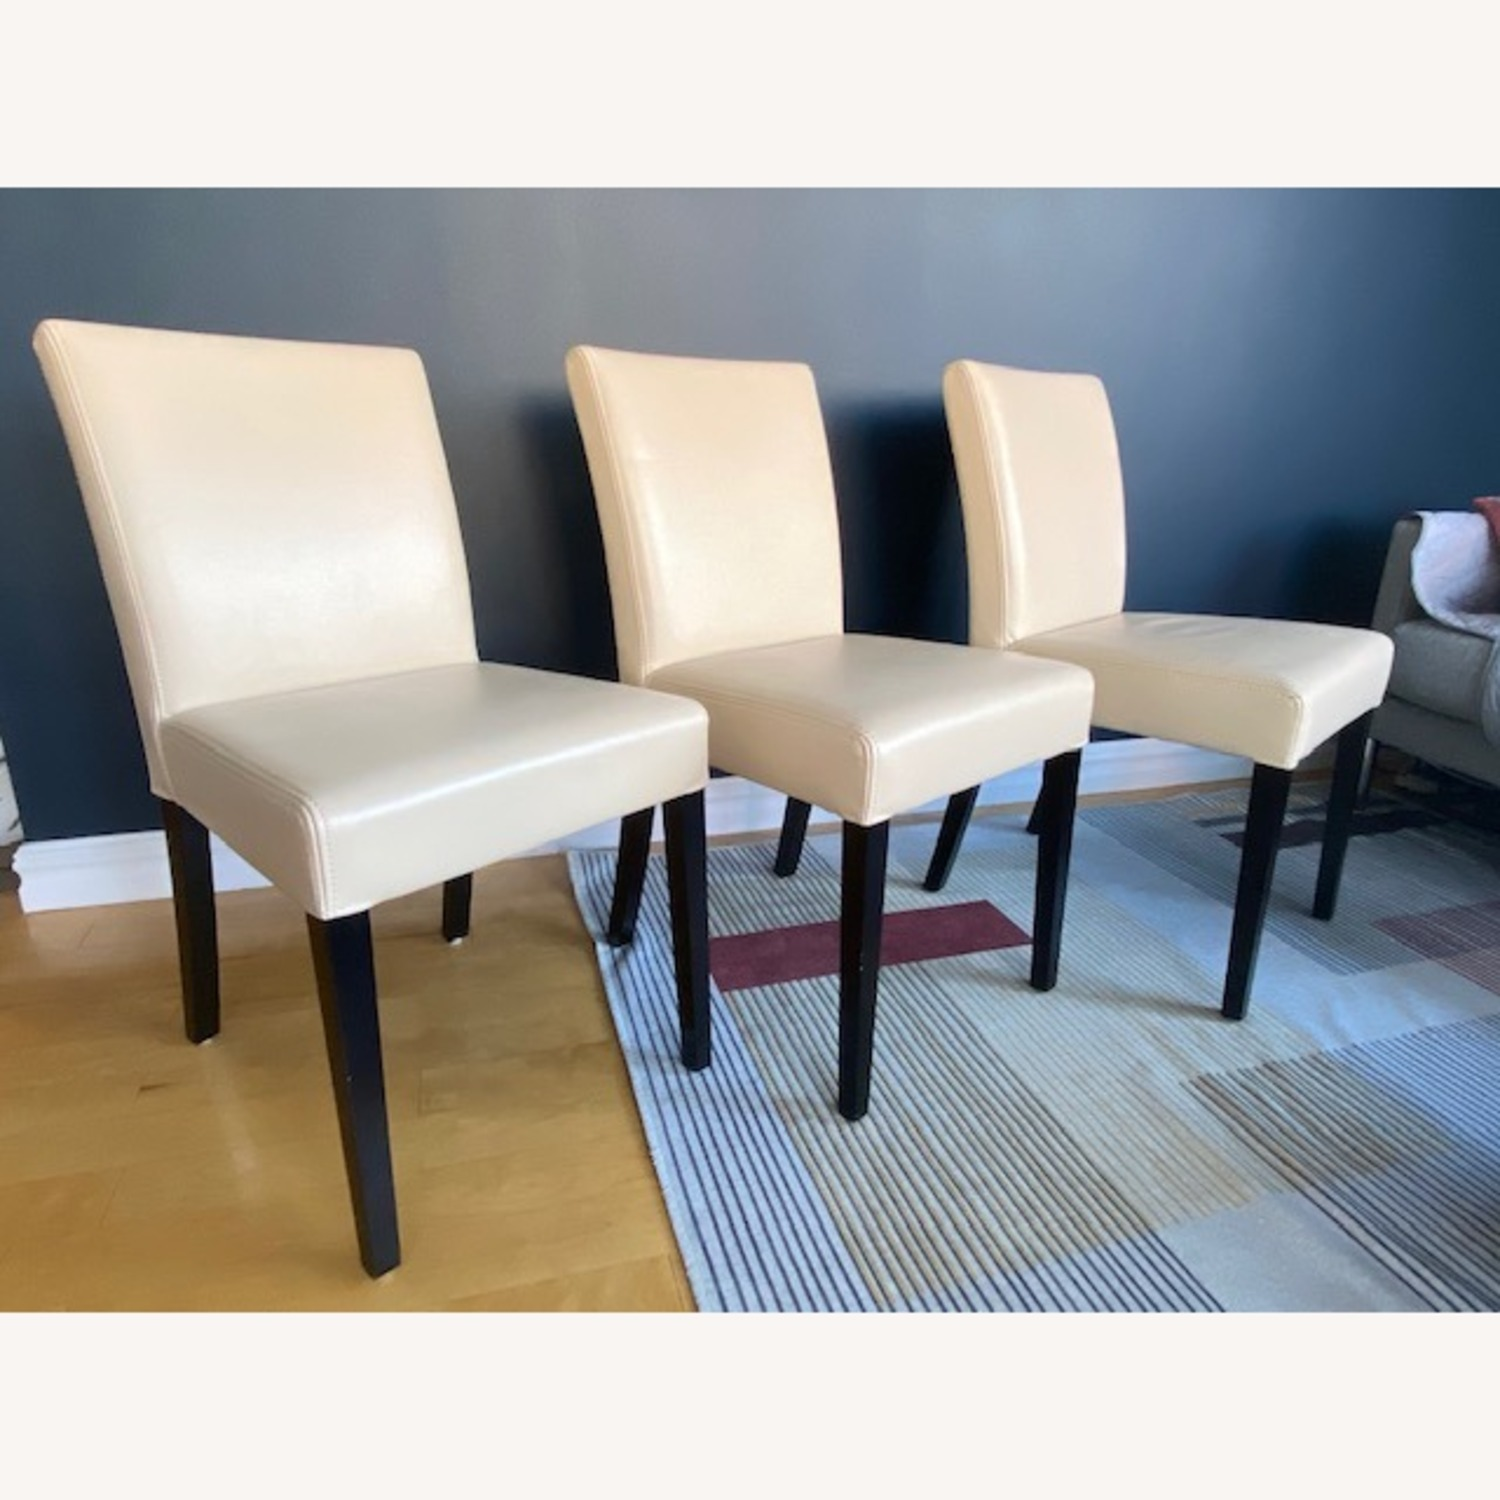 Crate & Barrel Lowe Ivory Leather Dining Chairs - image-0